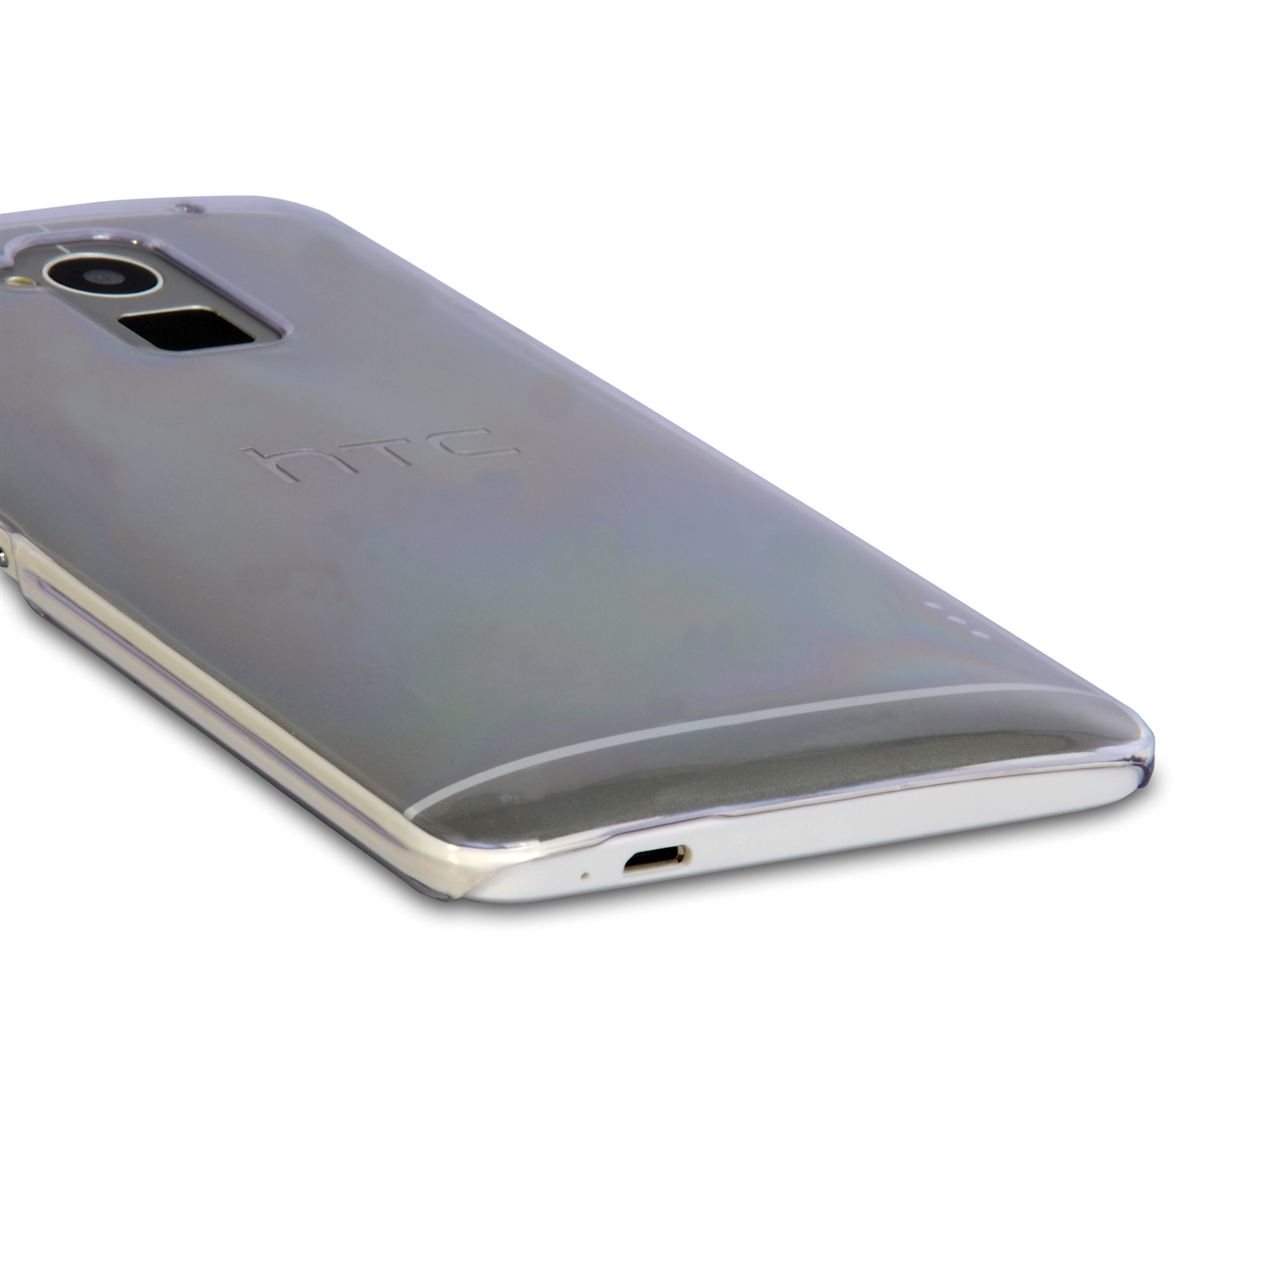 YouSave Accessories HTC One Max Hard Case - Clear